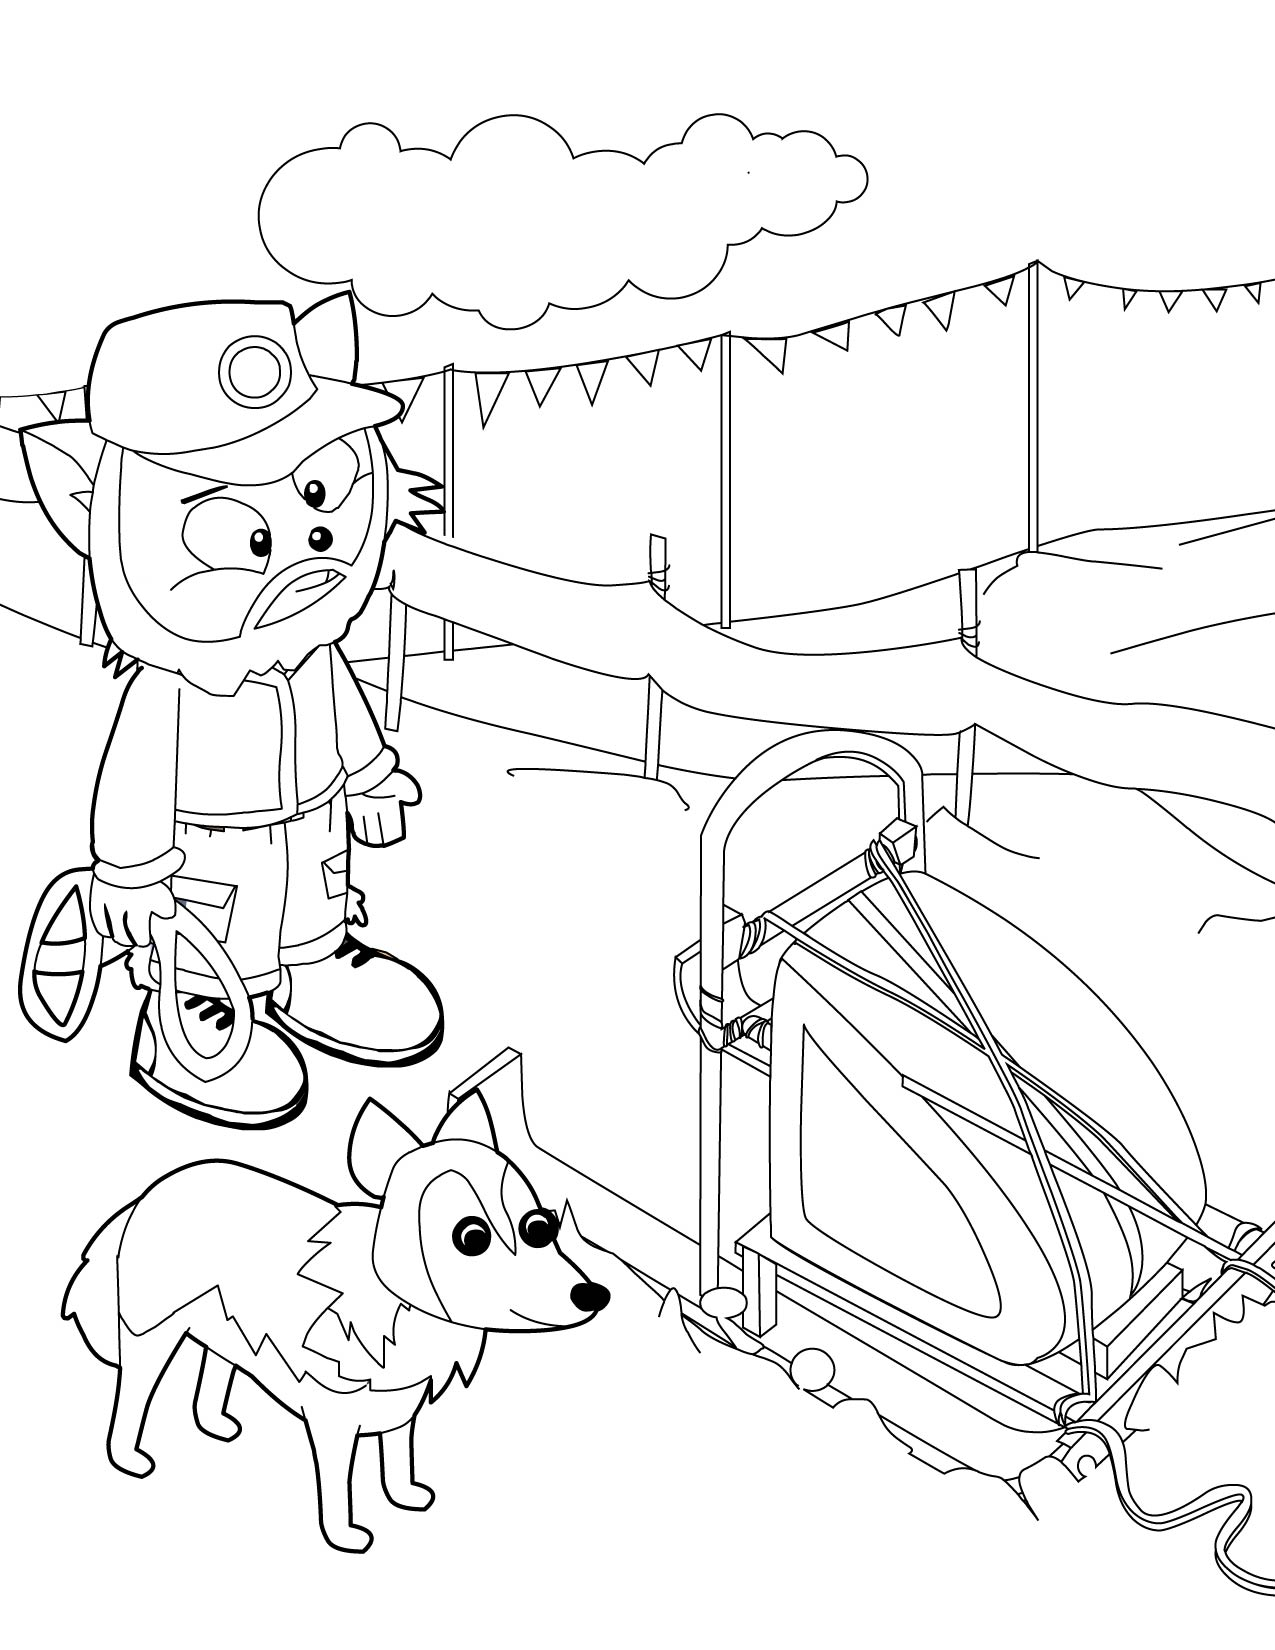 dog sled drawing at getdrawings com free for personal use dog sled santas sleigh with reindeer color page dogs sleigh coloring page